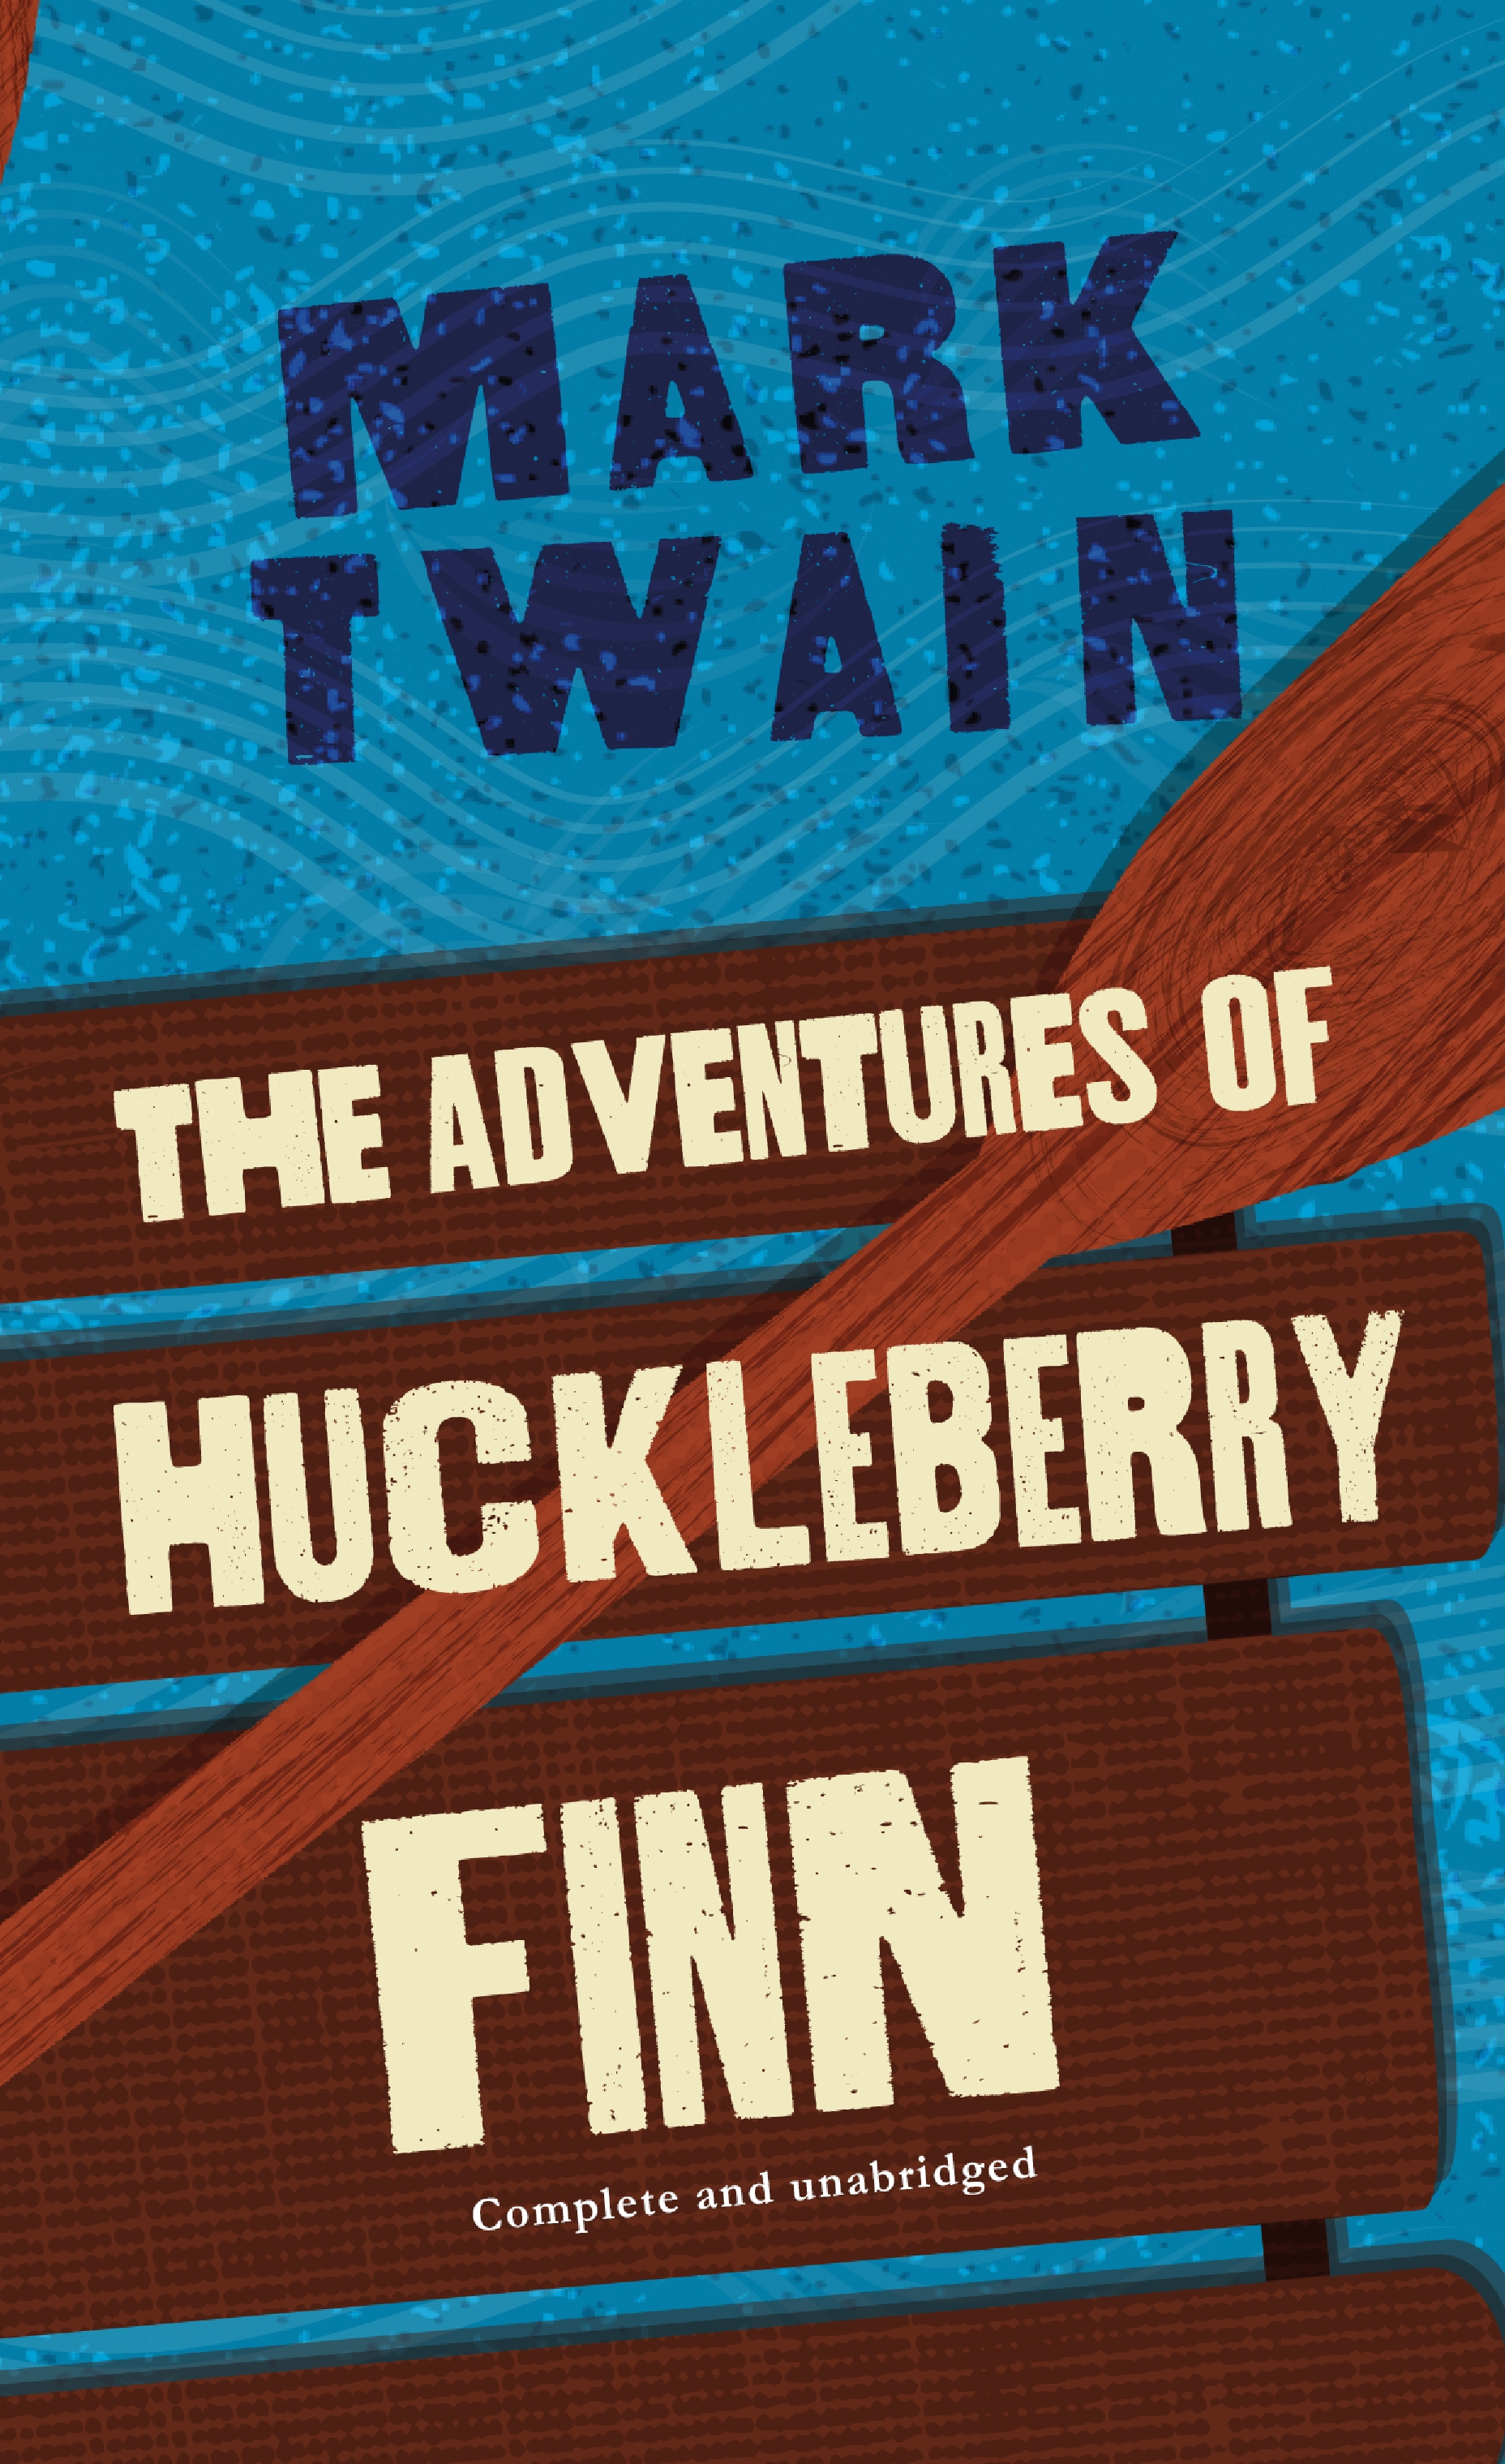 short book review of the adventures of huckleberry finn